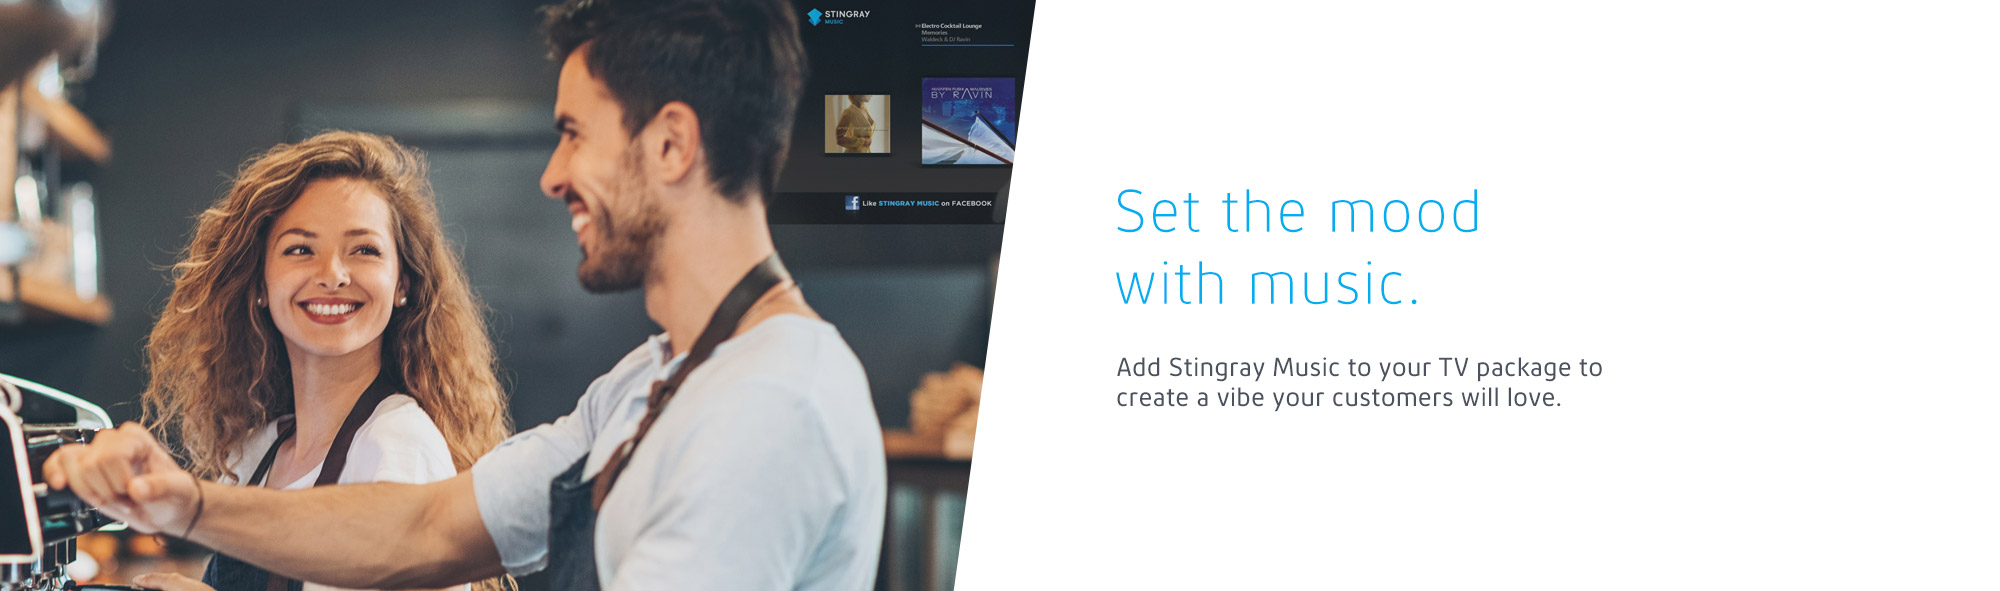 Add Stingray Music to your TV package to create a vibe your customer will love.